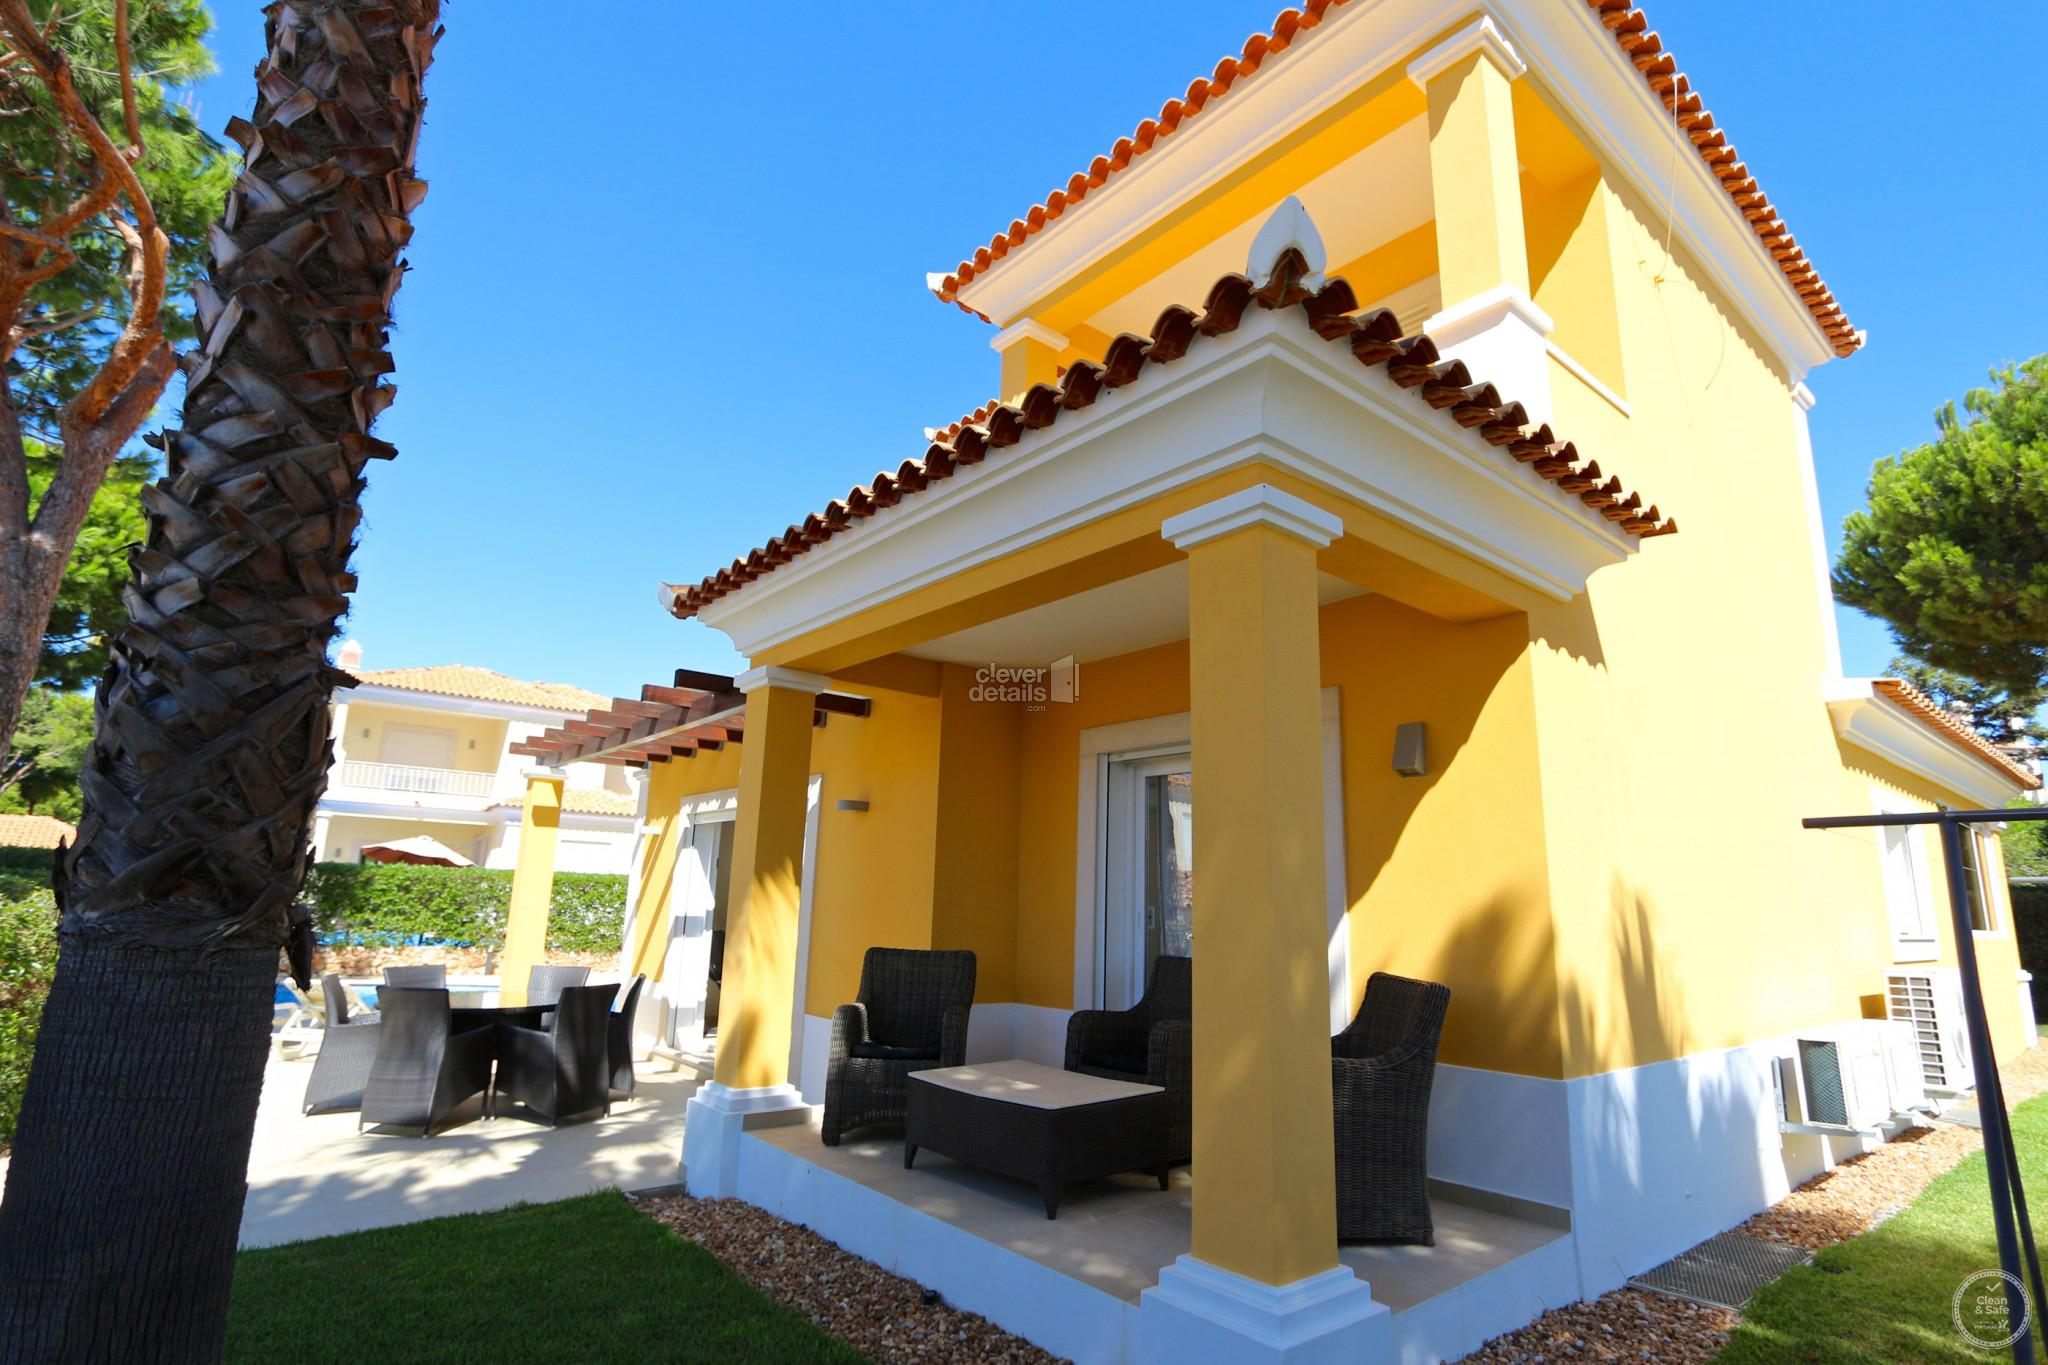 Prime location: Private 4 bedroom, 4 bathroom villa located in the in Old Village.Close to bars and restaurant and an easy 30 minutes walking dist...